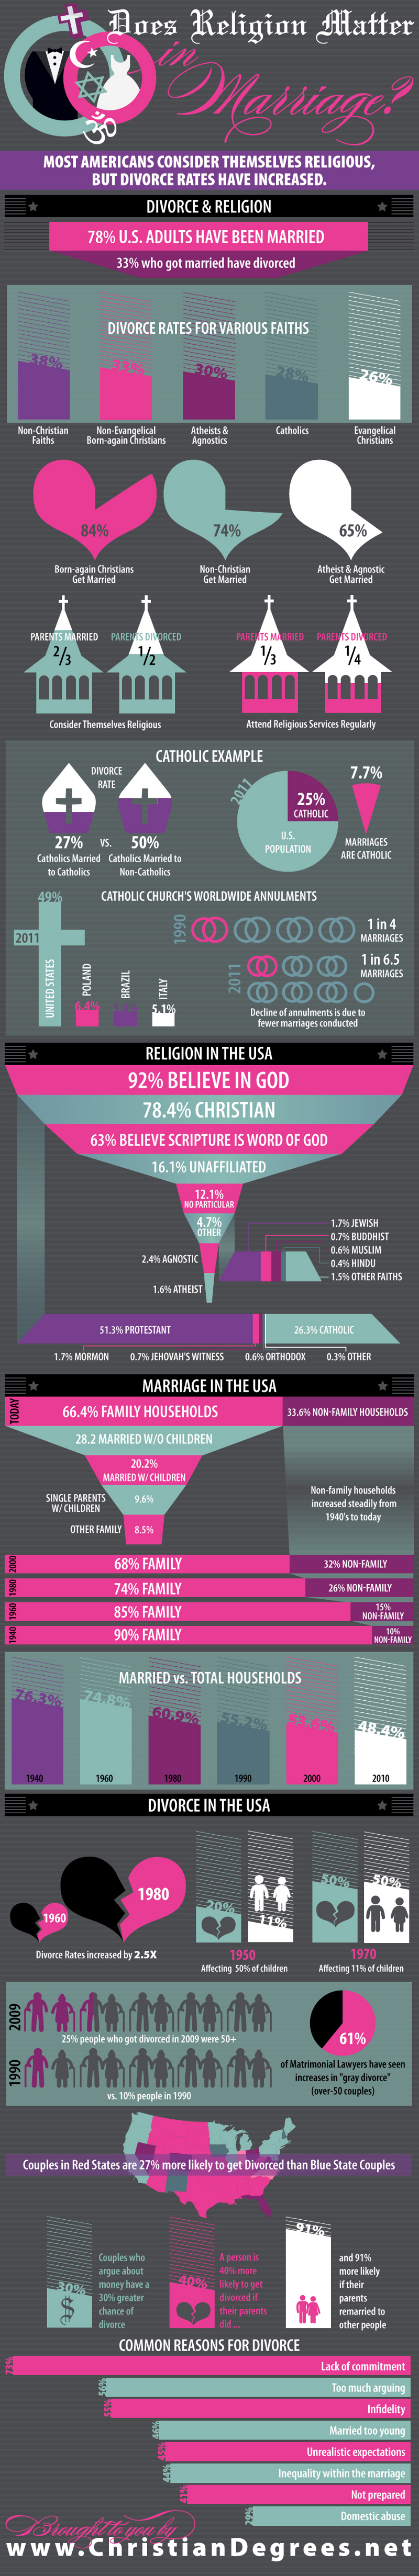 Marriage and Religion